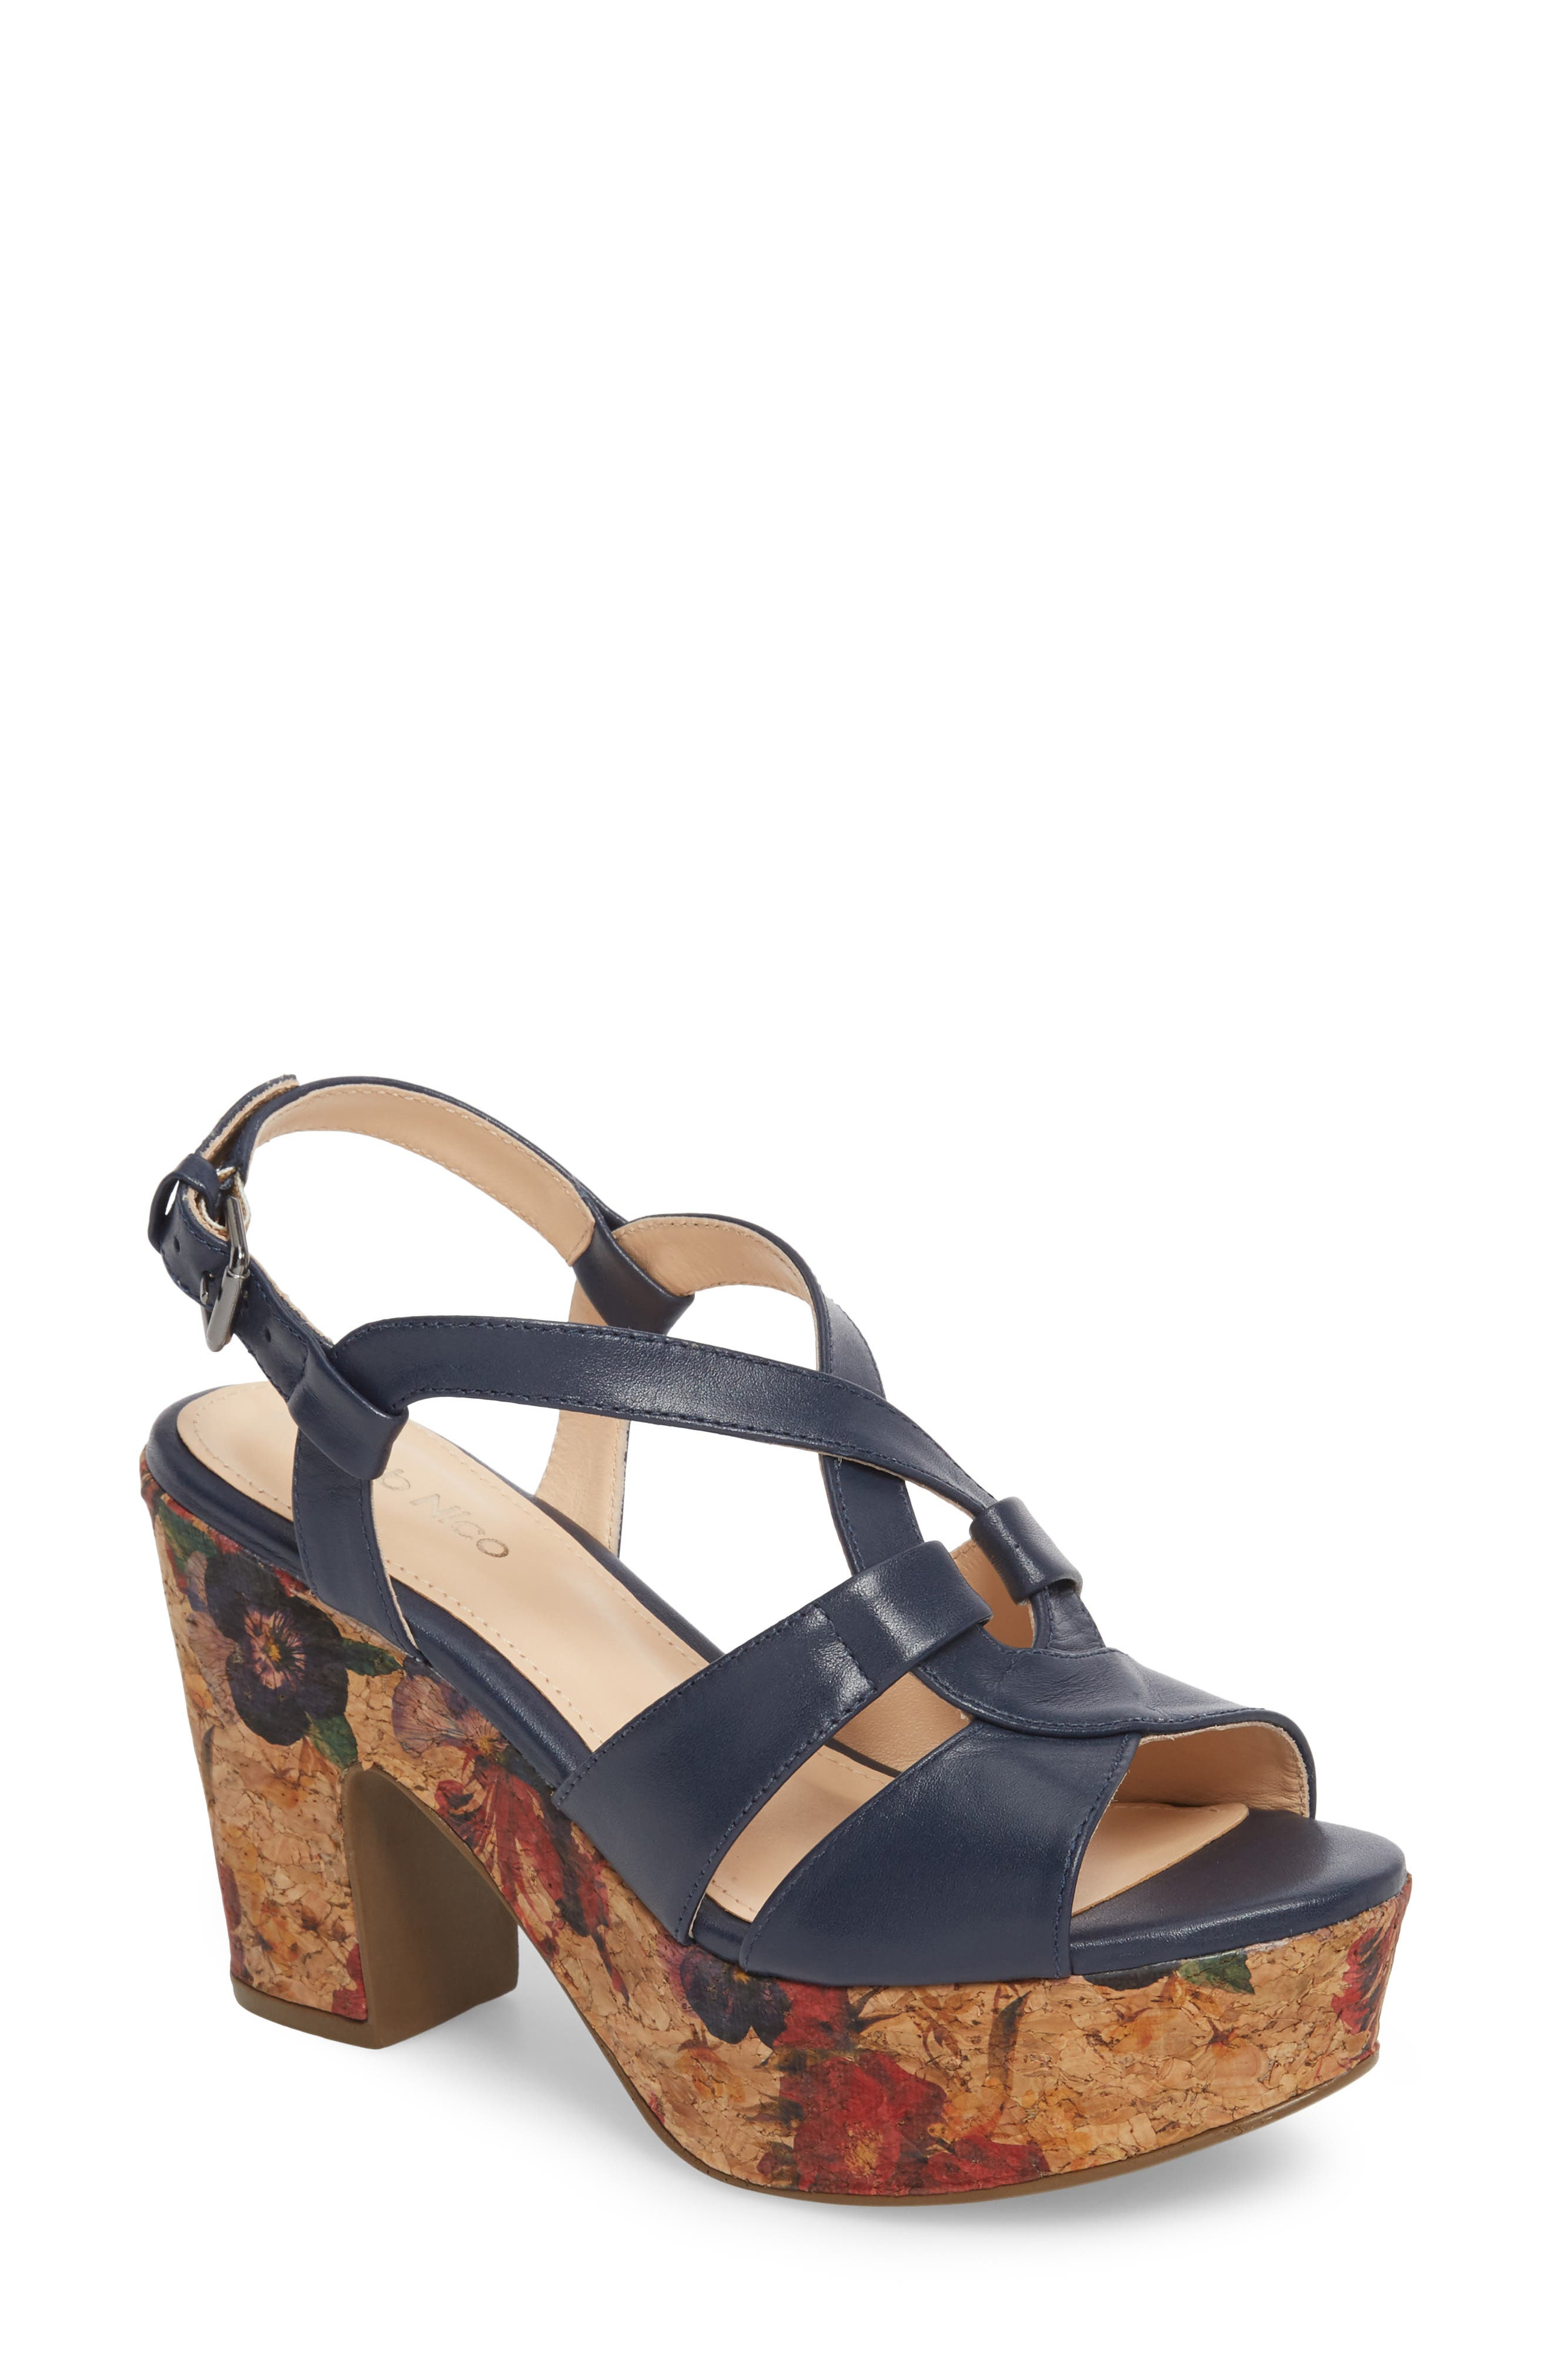 KLUB NICO Victoria Platform Sandal, Main, color, NAVY LEATHER